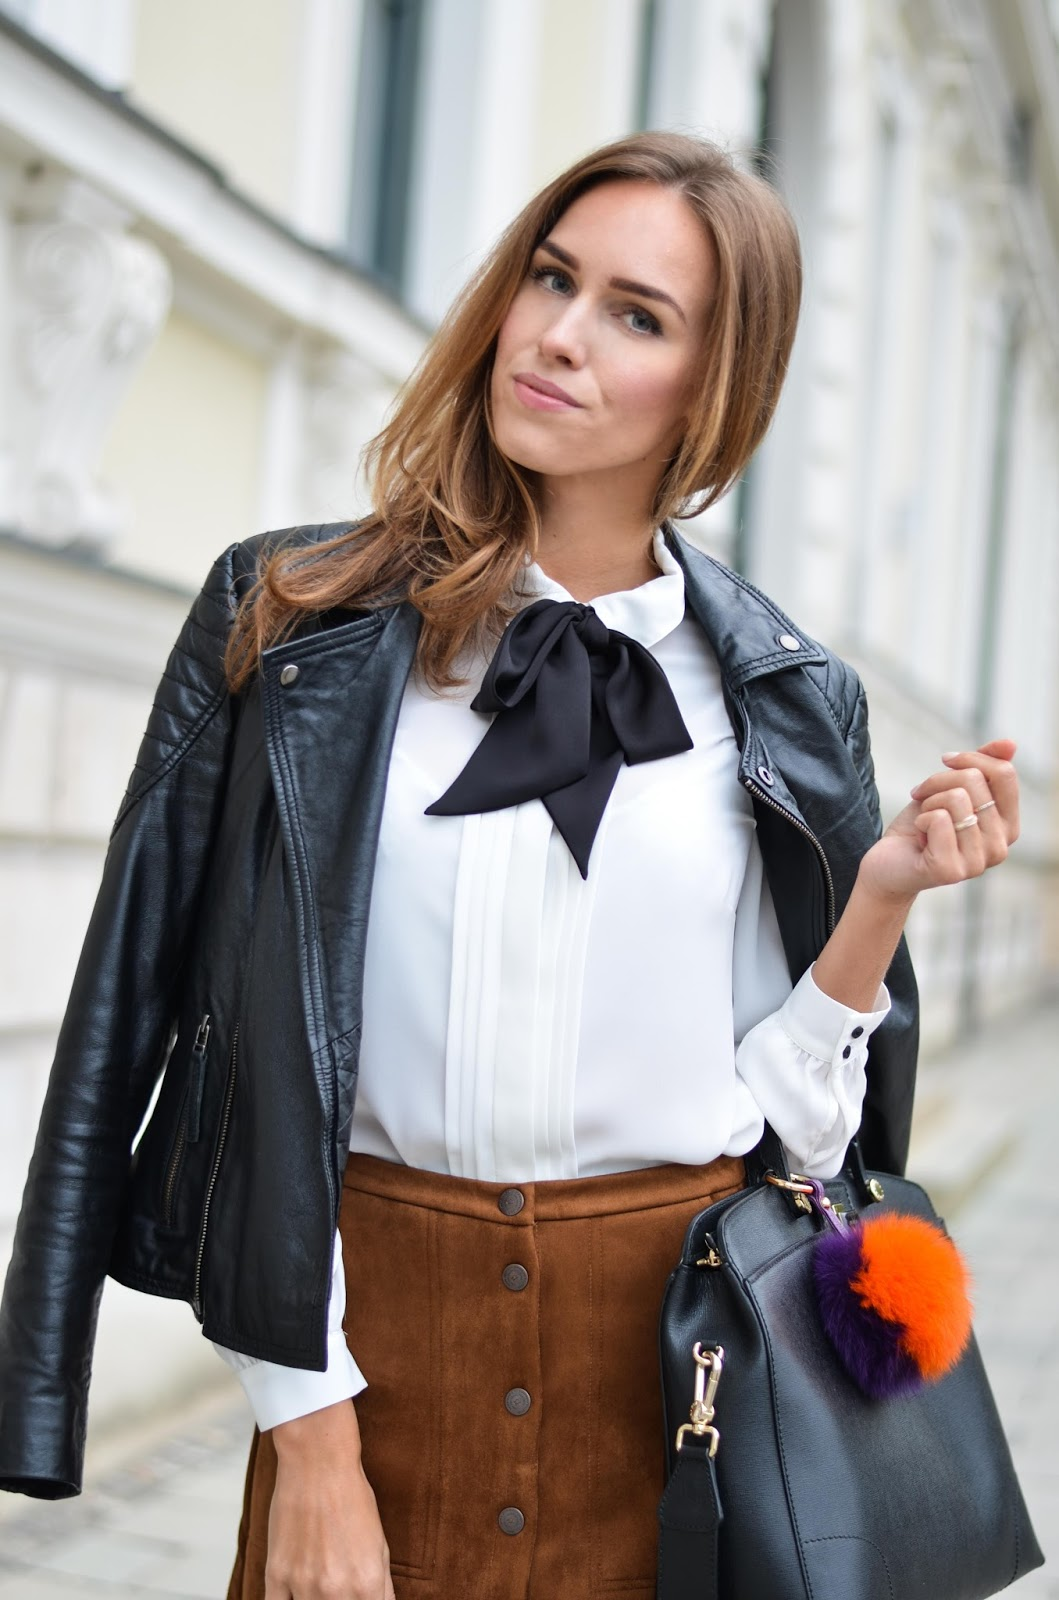 kristjaana mere bow tie shirt suede skirt fall outfit